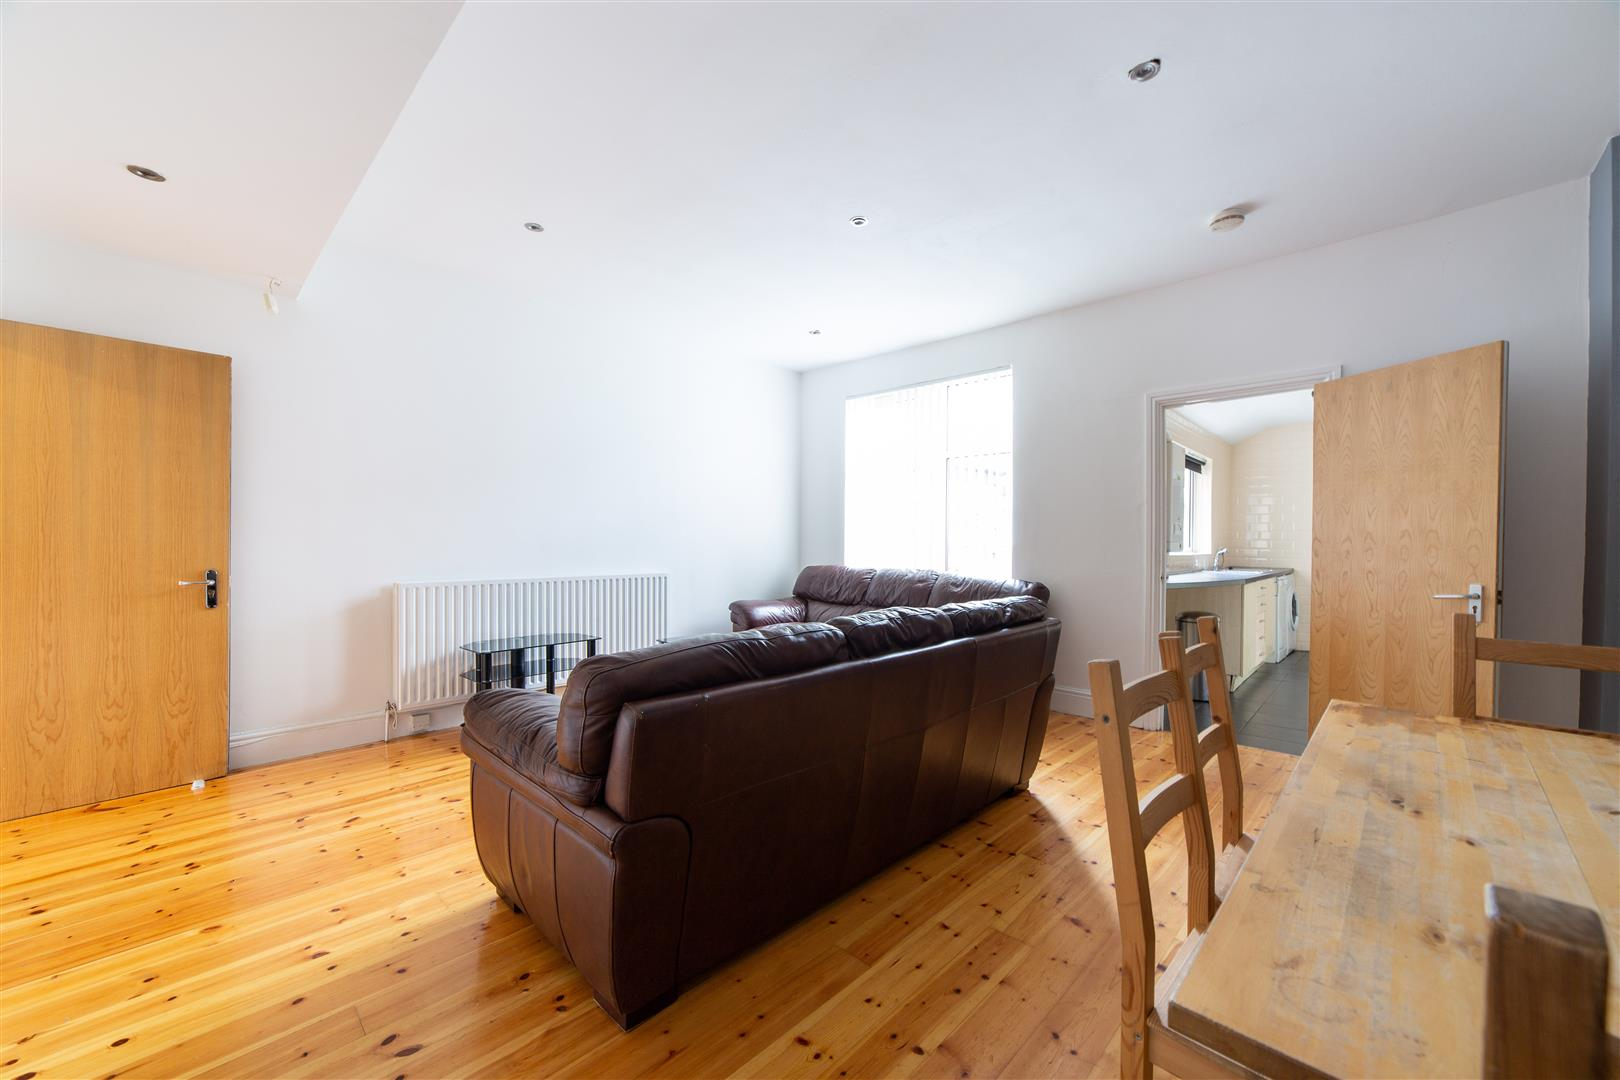 5 bed terraced house to rent in Newcastle Upon Tyne, NE6 5SN  - Property Image 4